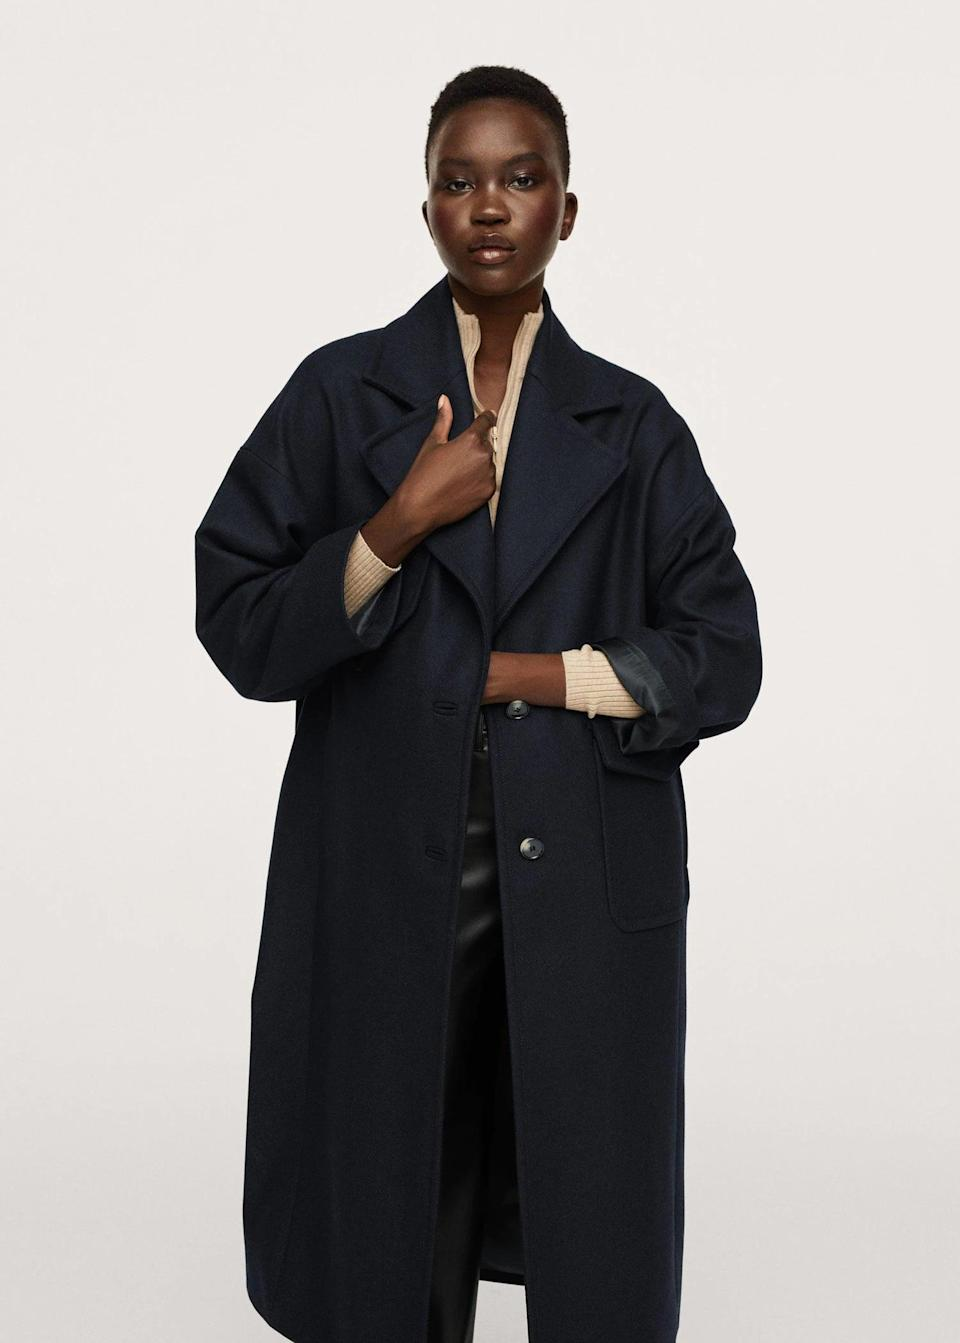 <p>This <span>Pocketed Wool Coat</span> ($230) has enduring appeal, making it an investment you'll reach for season after season. With its crisp presentation and classic silhouette, it's a failsafe fall coat.</p>